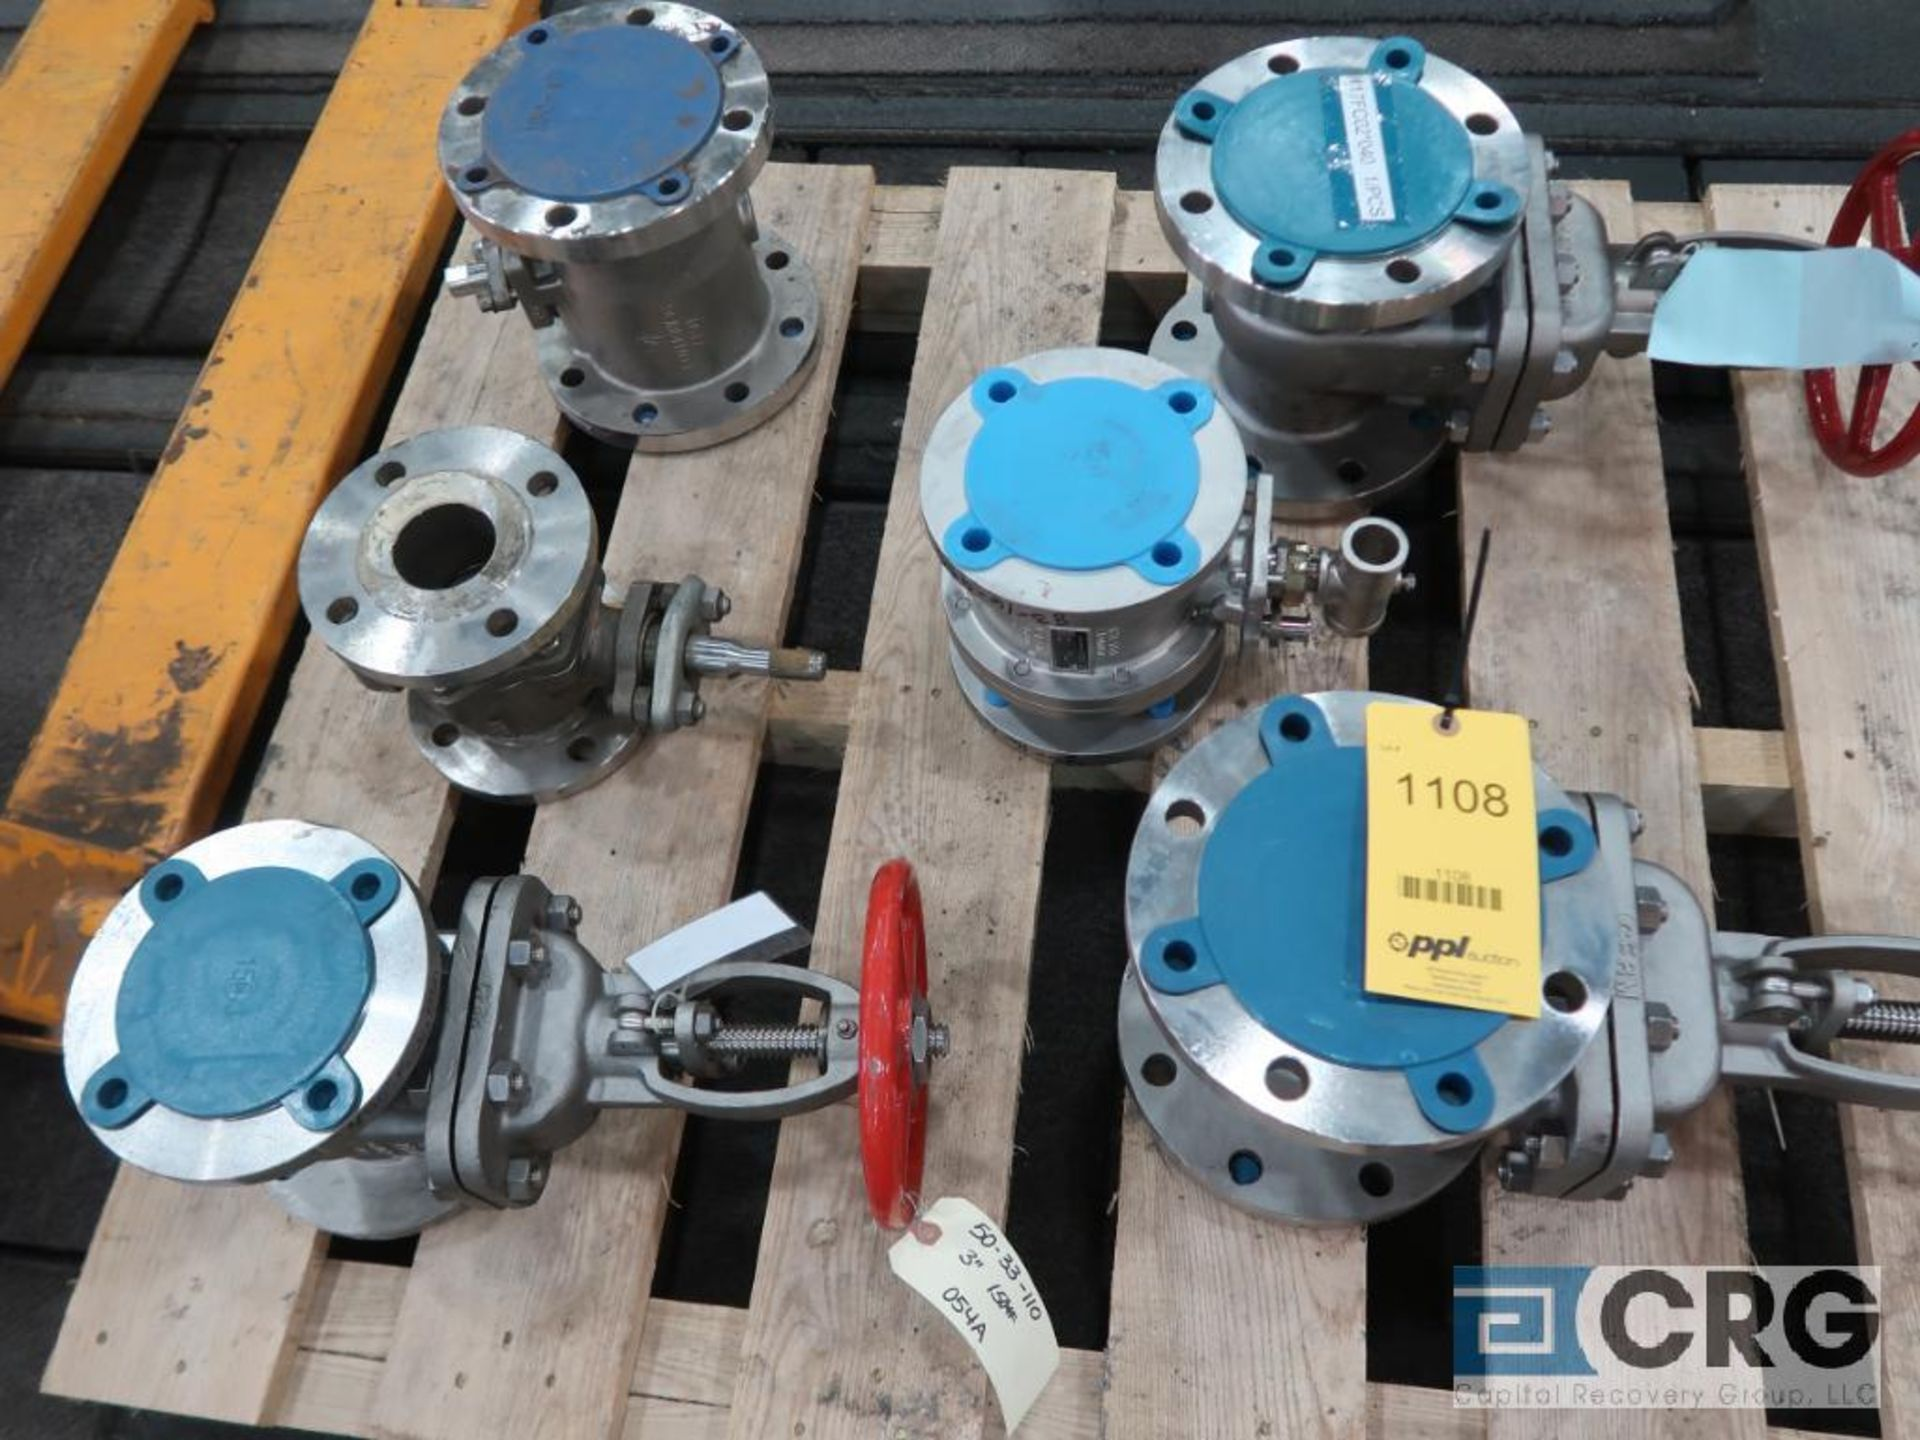 Lot of (6) stainless ball valves, (3) 3 in., and (3) 4 in. (Finish Building)